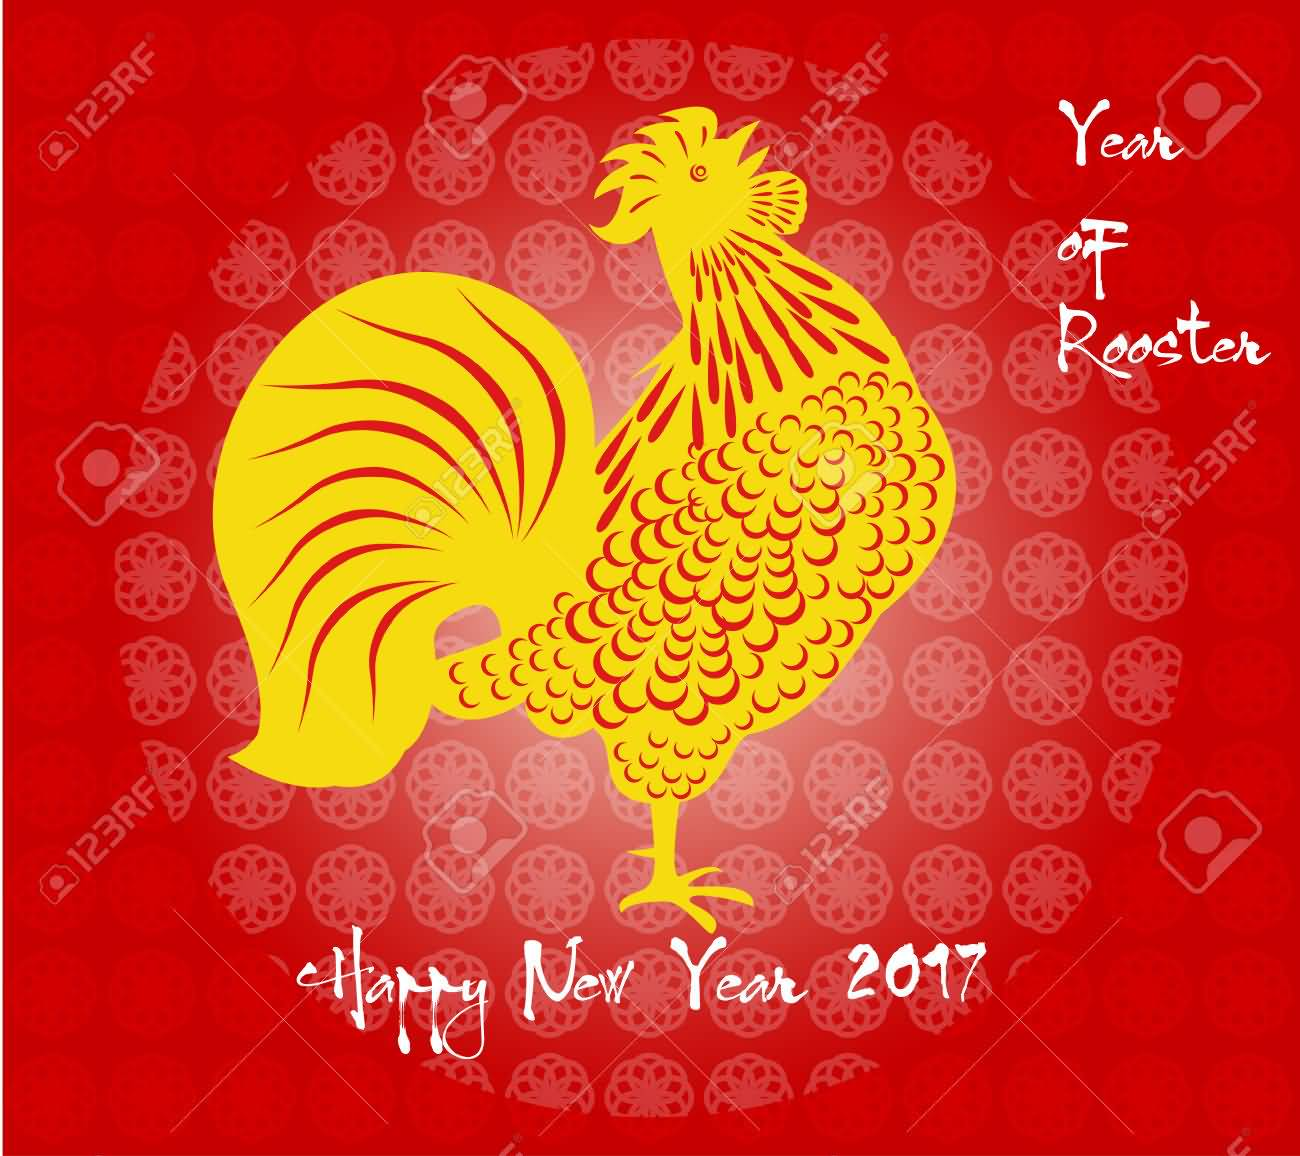 year of rooster happy chinese new year 2017 greeting card